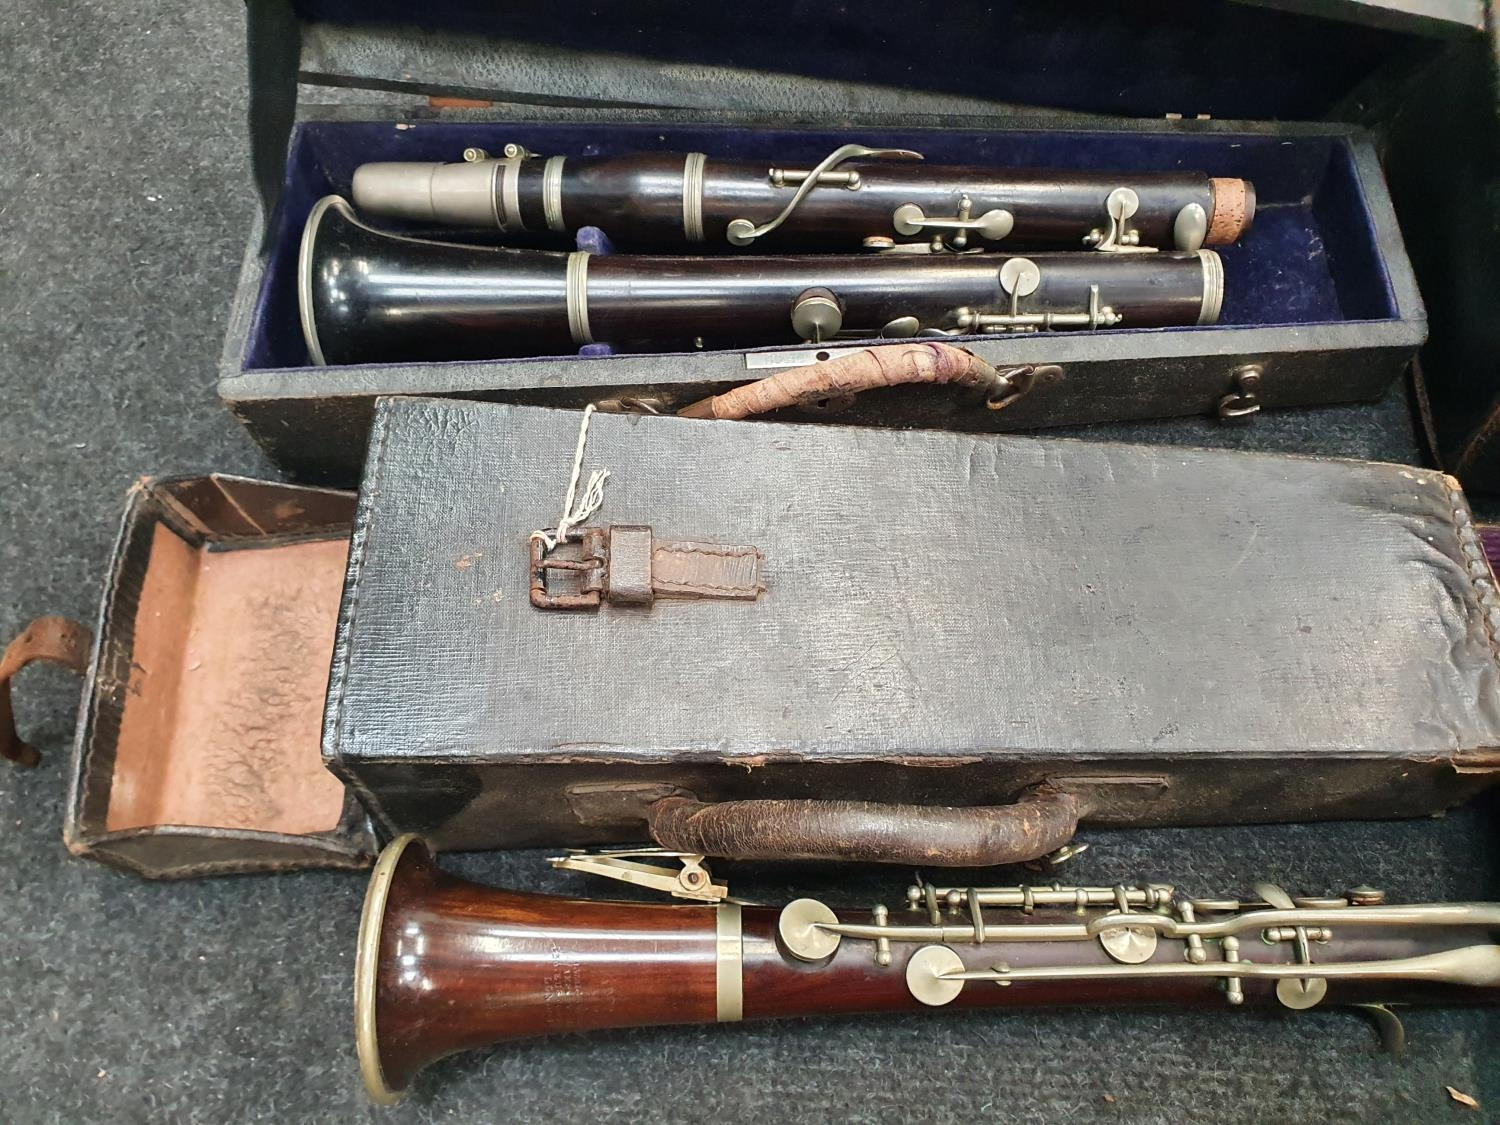 Case of vintage clarinets. - Image 4 of 6